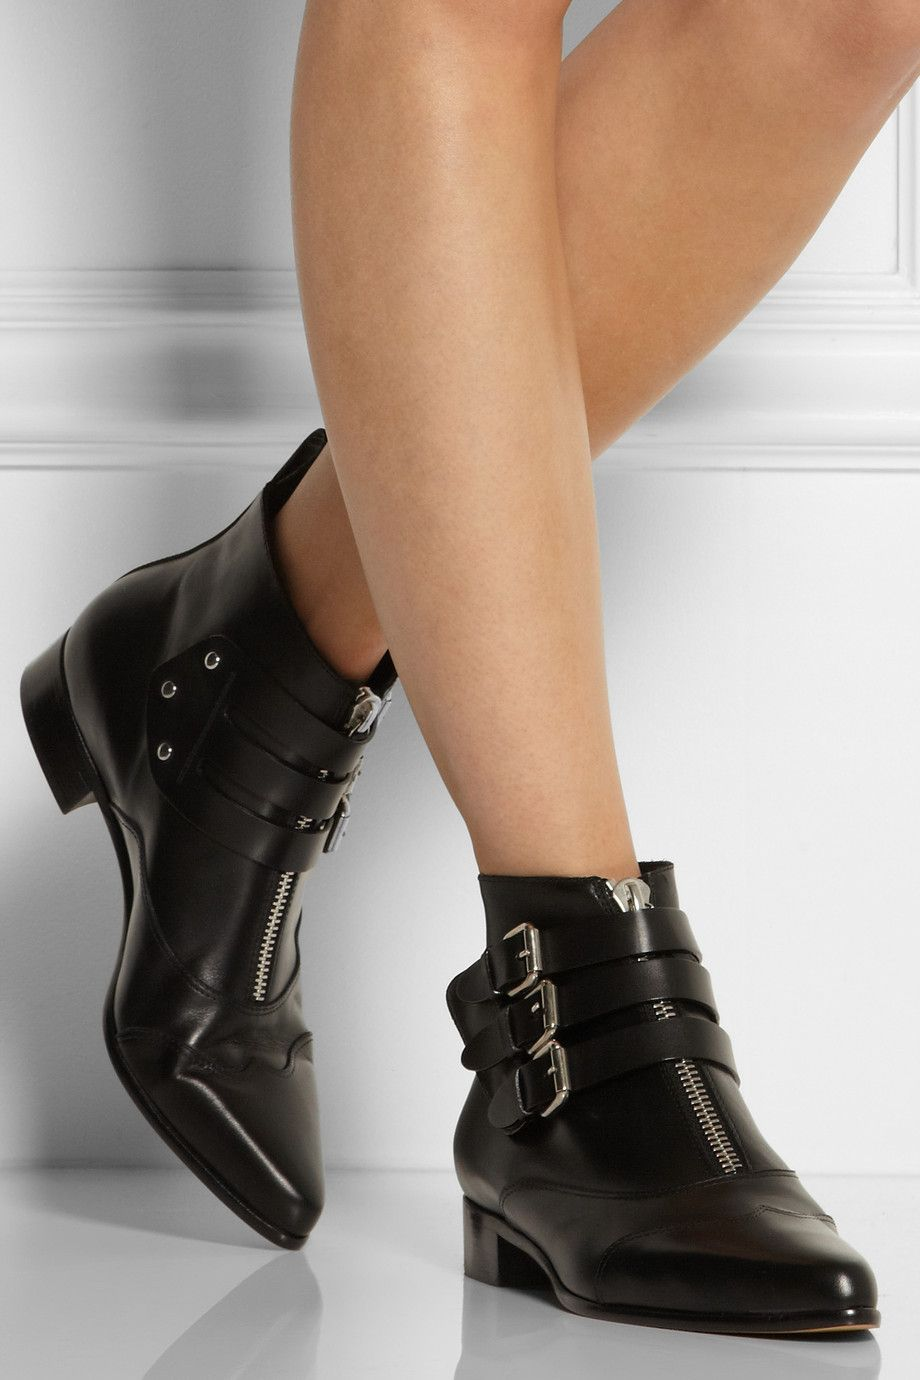 Tabitha Simmons Leather Boots 2ty5vrFIRk